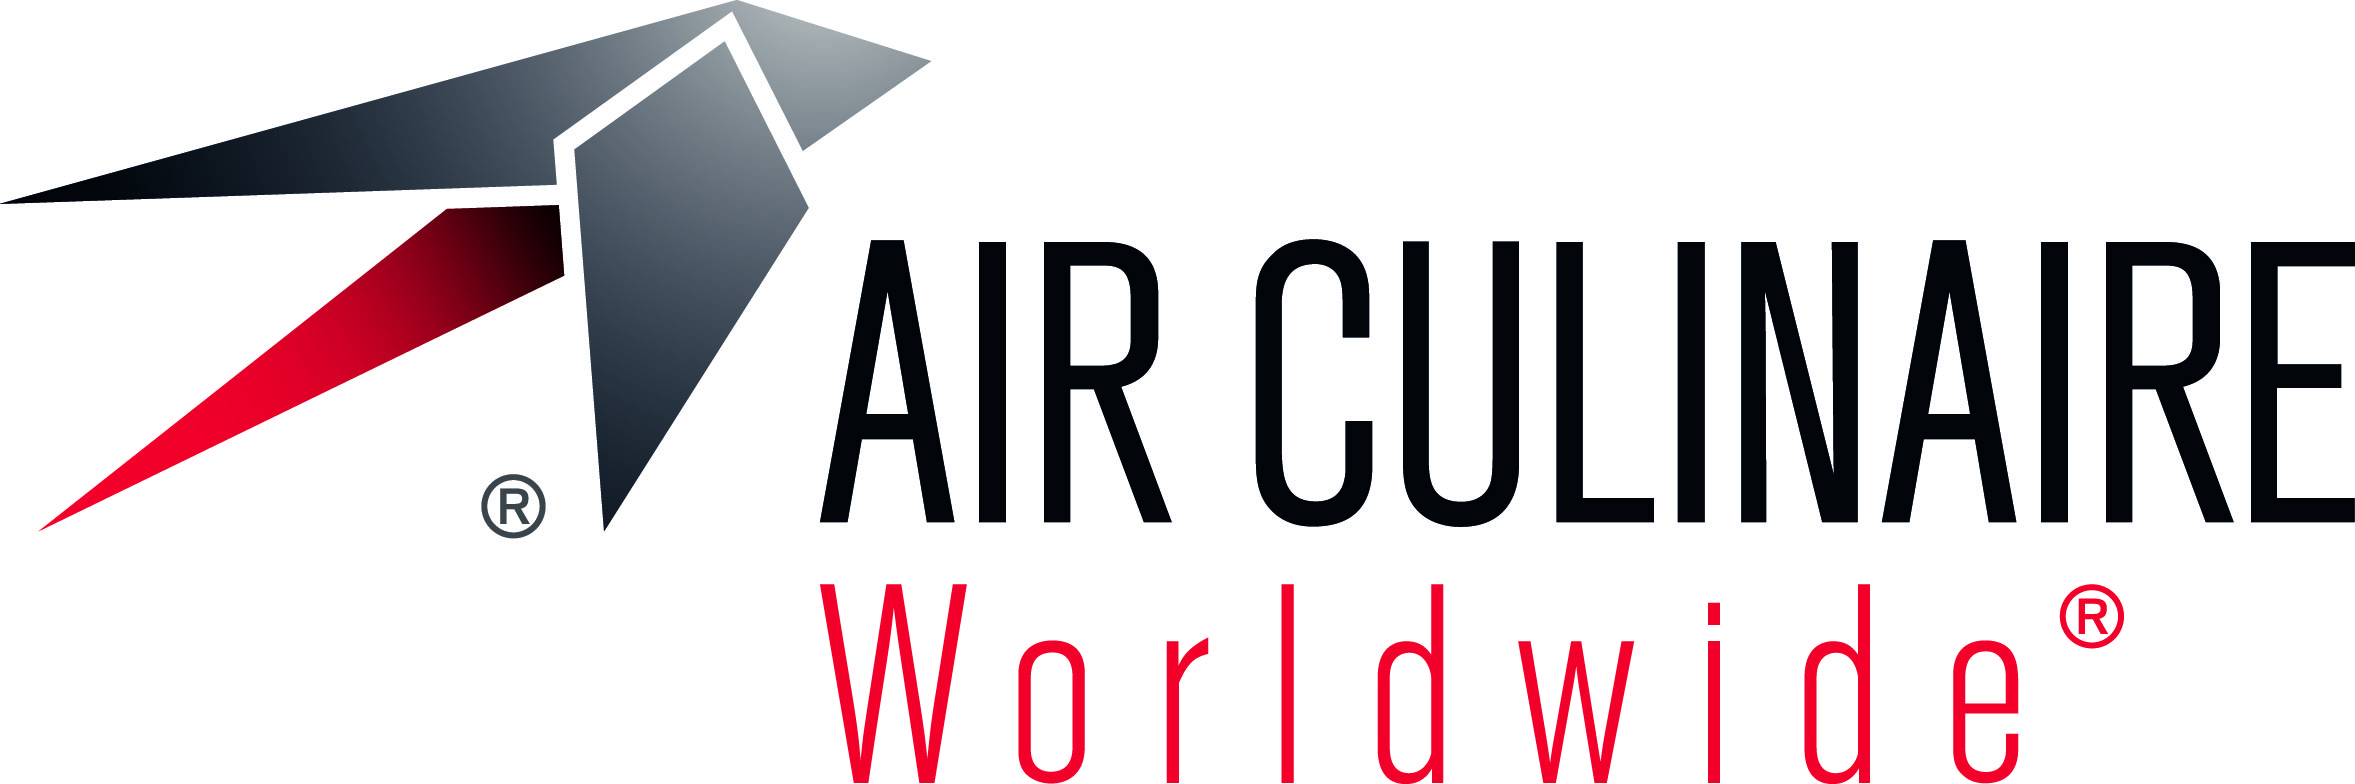 Air Culinaire Worldwide logo